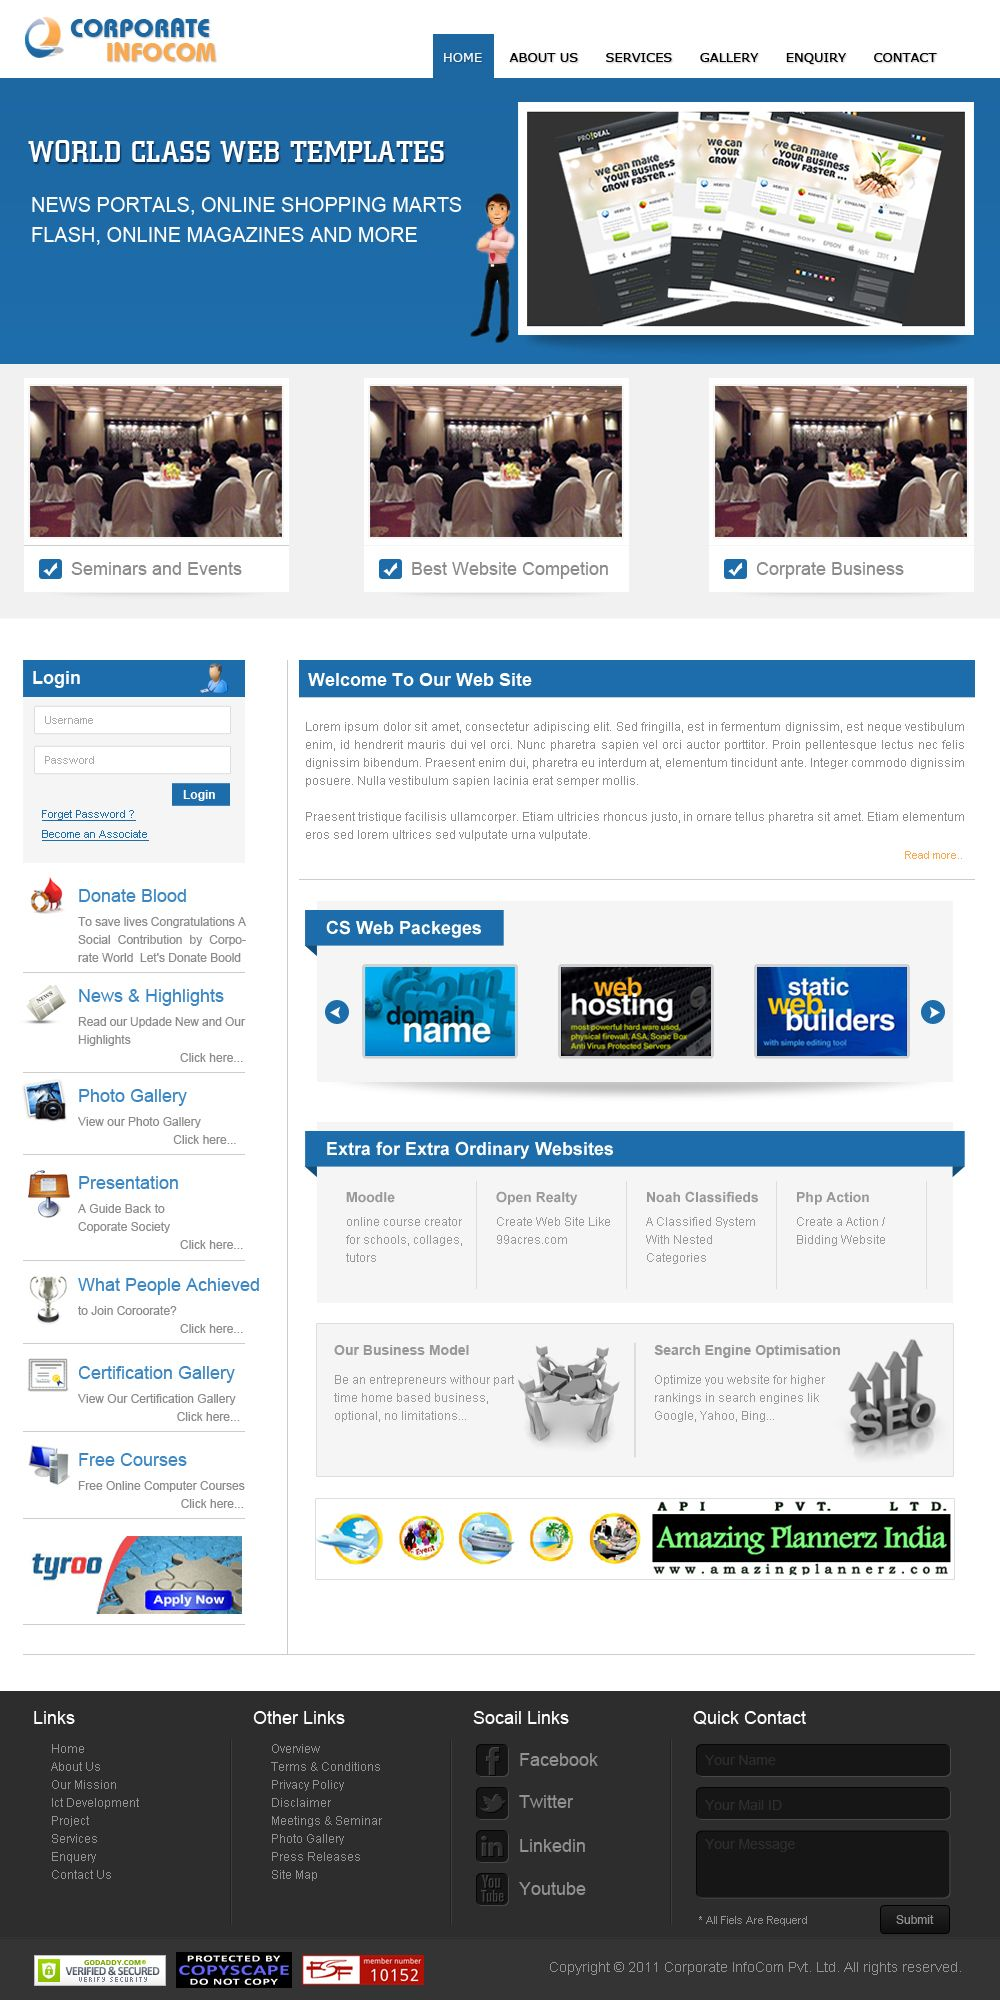 This website layout design for demo template for corporate infocom this website layout design for demo template for corporate infocom i work on layout designing maxwellsz